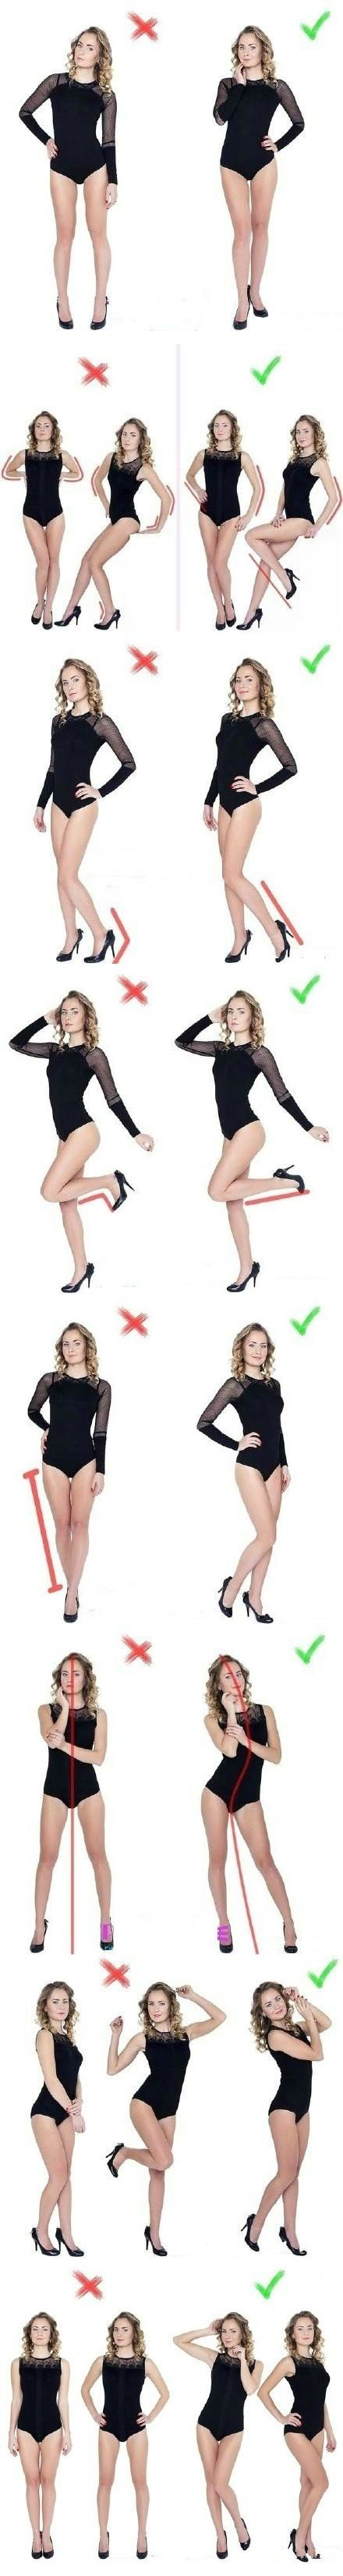 Extremely helpful pinup pose reference guide.